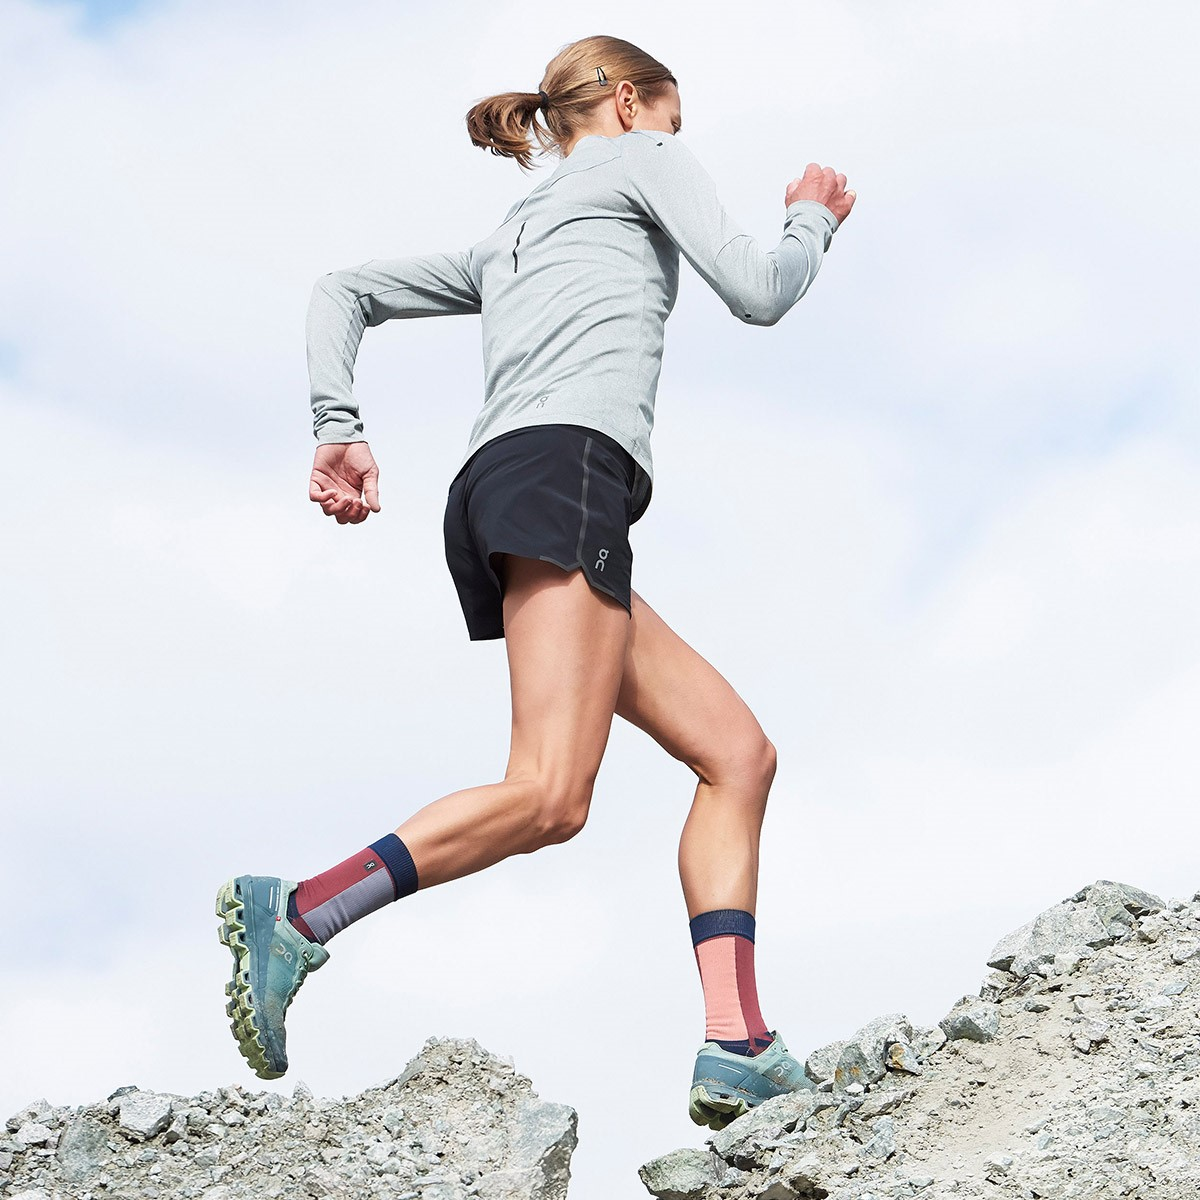 ON-Cloudventure-Trail-Running-Shoes-1 +80 Most Inspiring Workout Shoes Ideas for Women